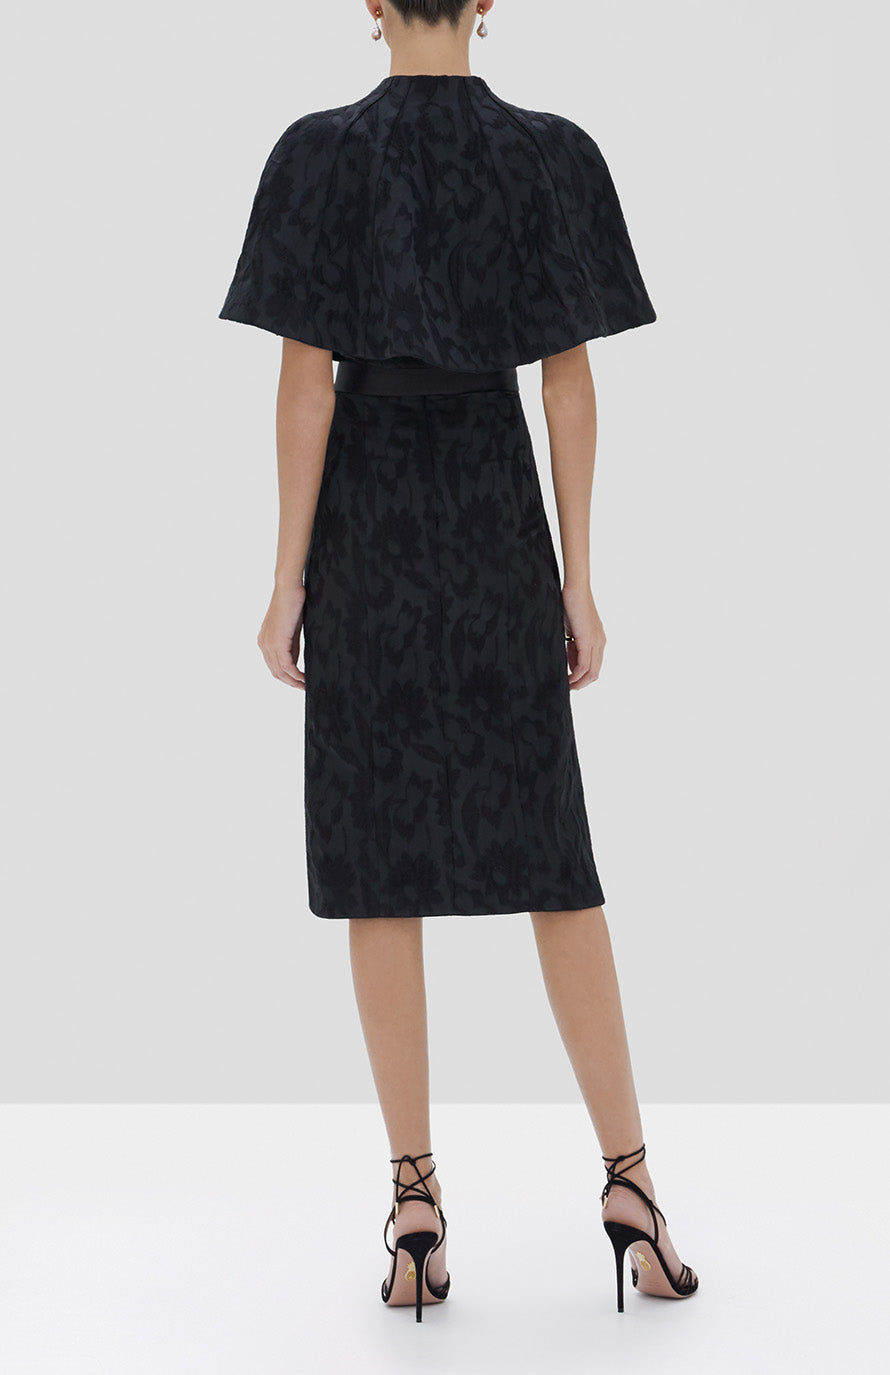 Alexis Fiah Cape and Isotta Dress in Black Floral Jacquard - Rear View